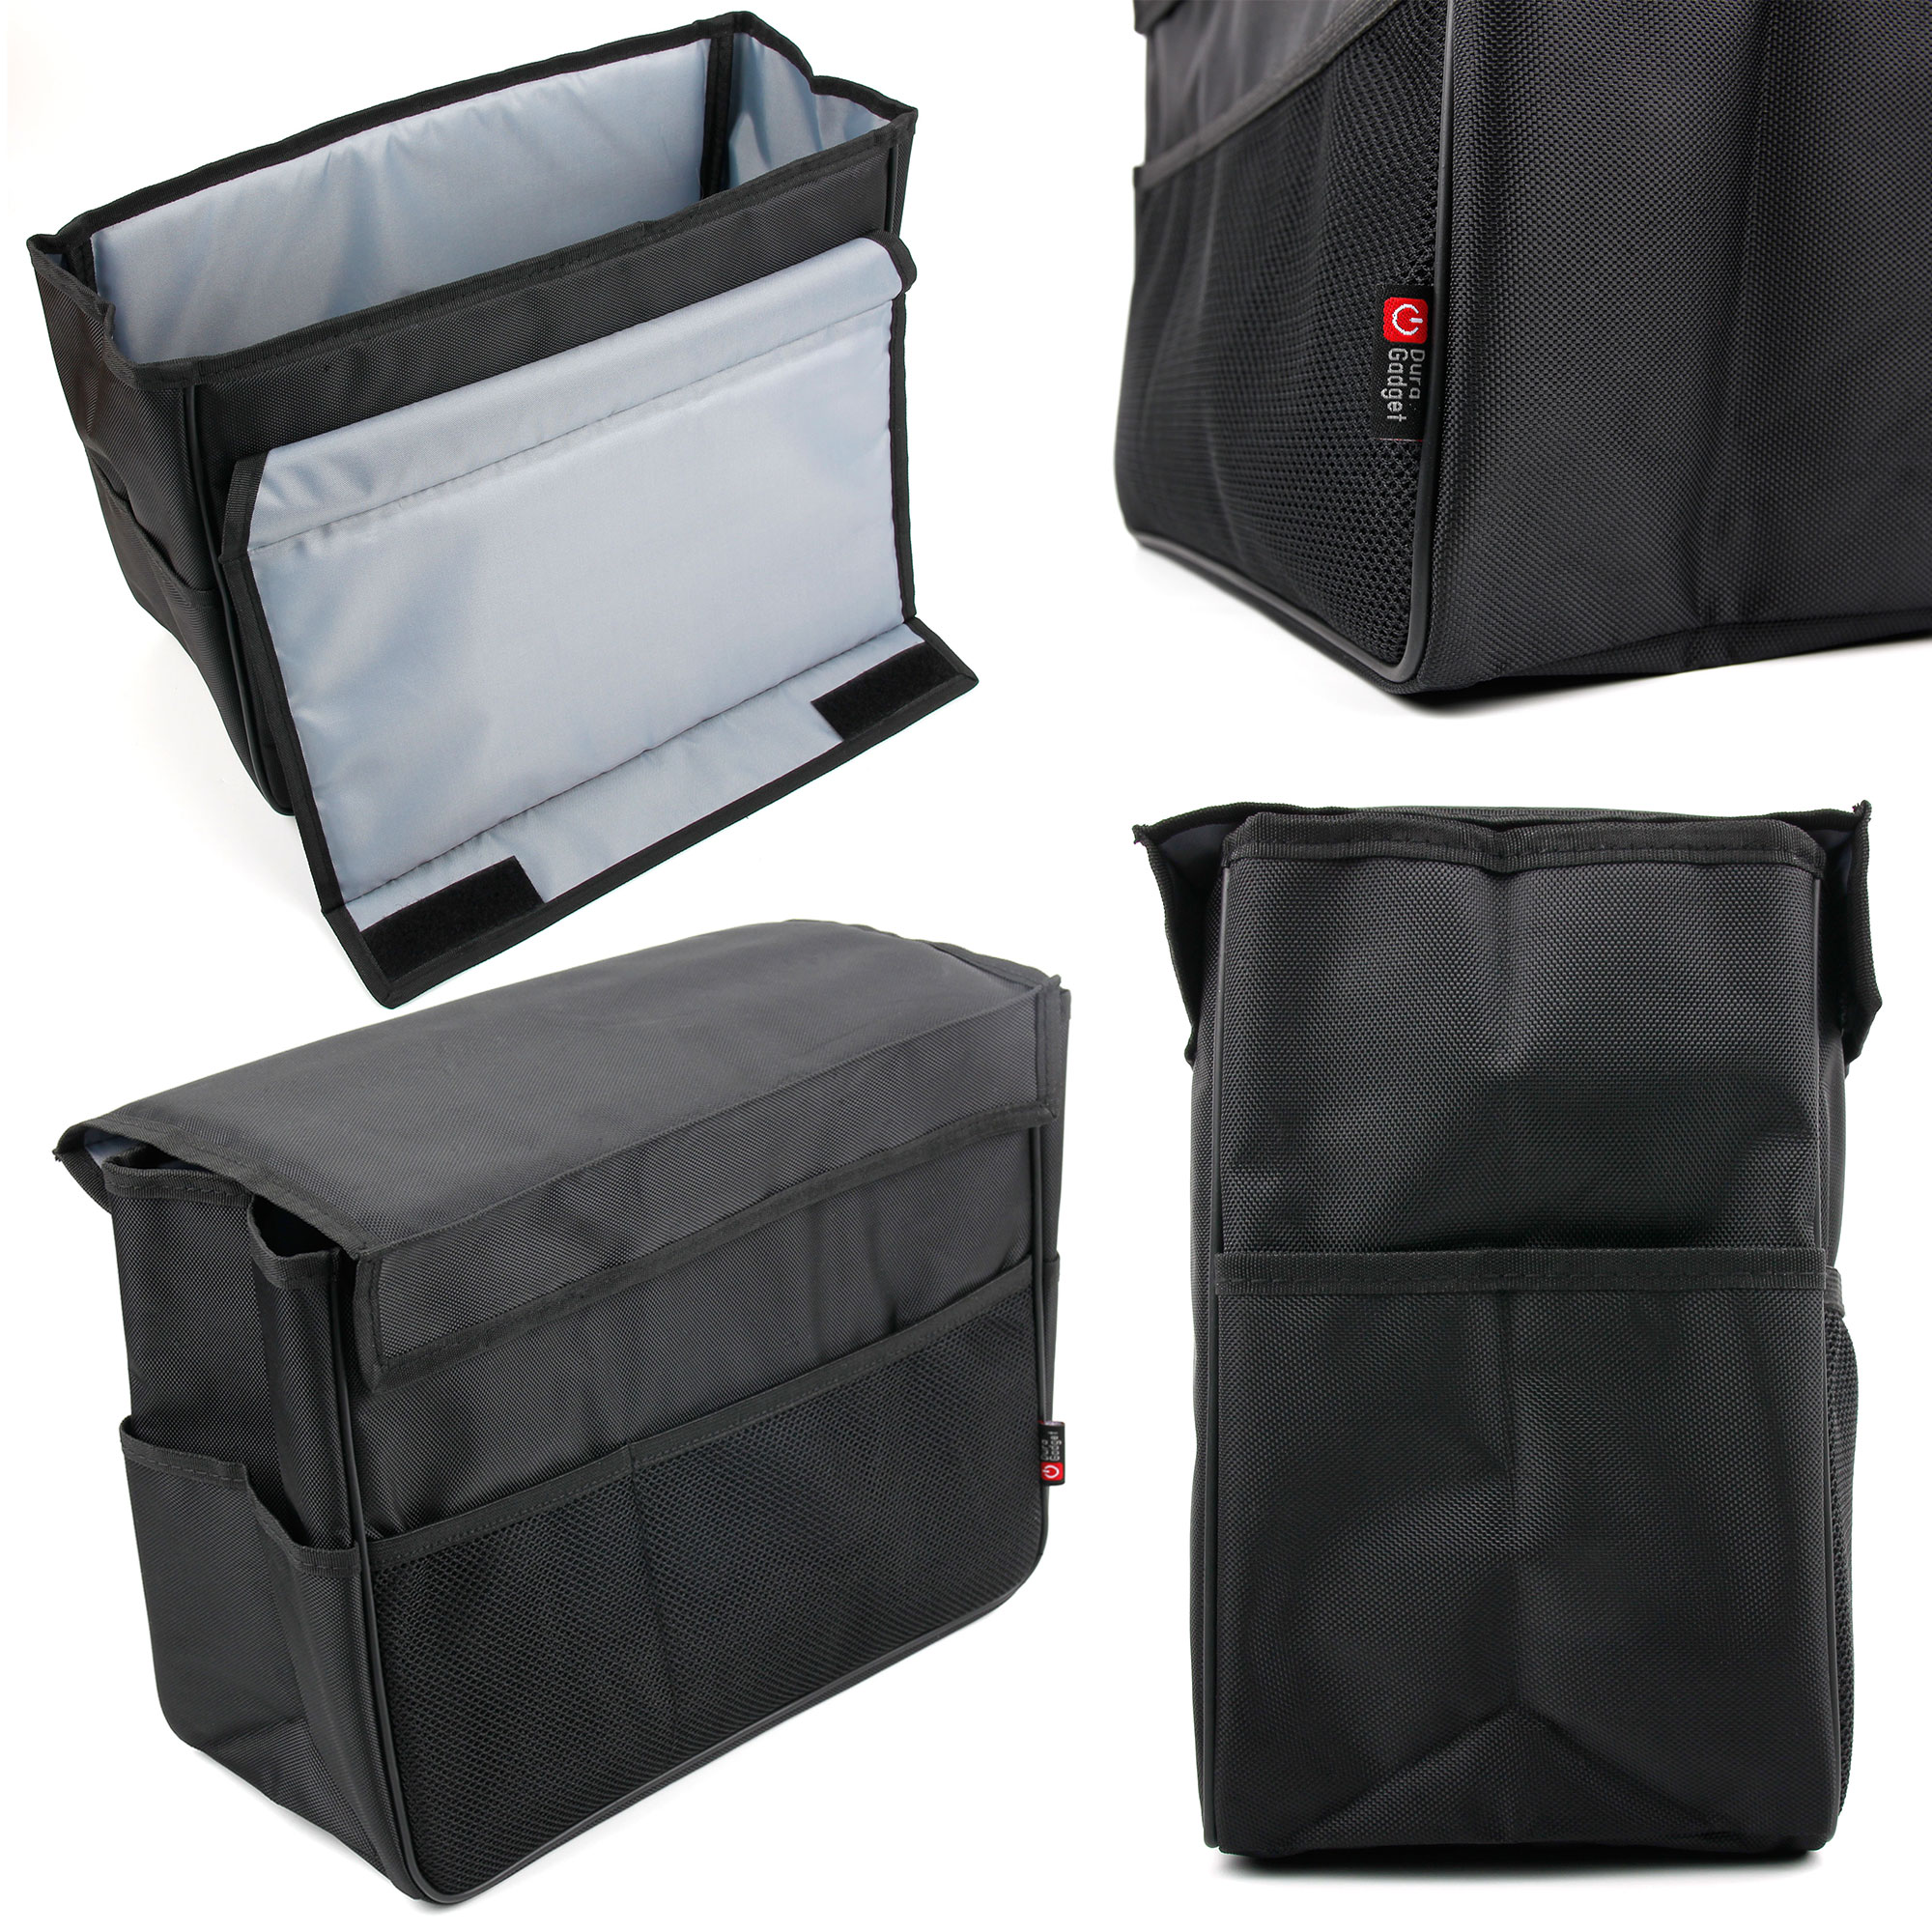 organisateur sac rangement de voiture pliable pour coffre ou si ge duragadget ebay. Black Bedroom Furniture Sets. Home Design Ideas